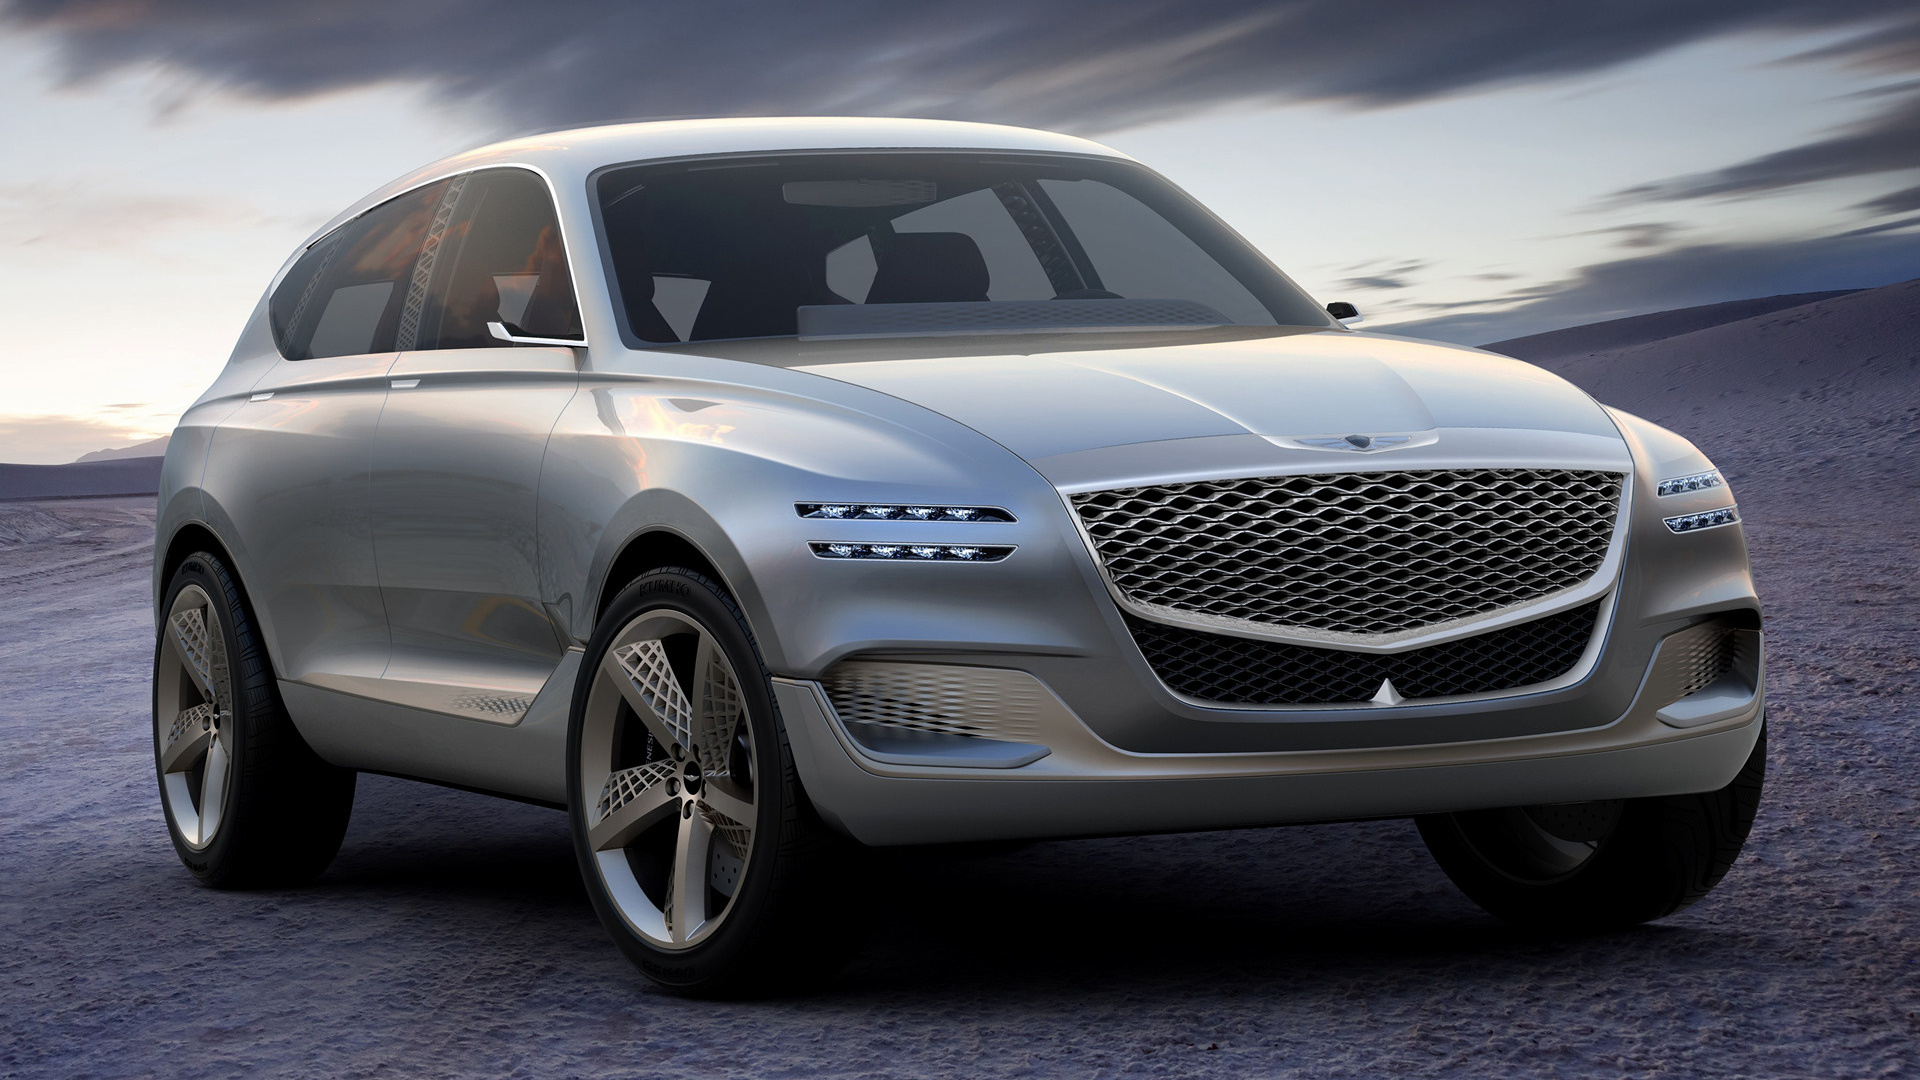 Genesis GV80 Concept (2017) Wallpapers and HD Images - Car Pixel